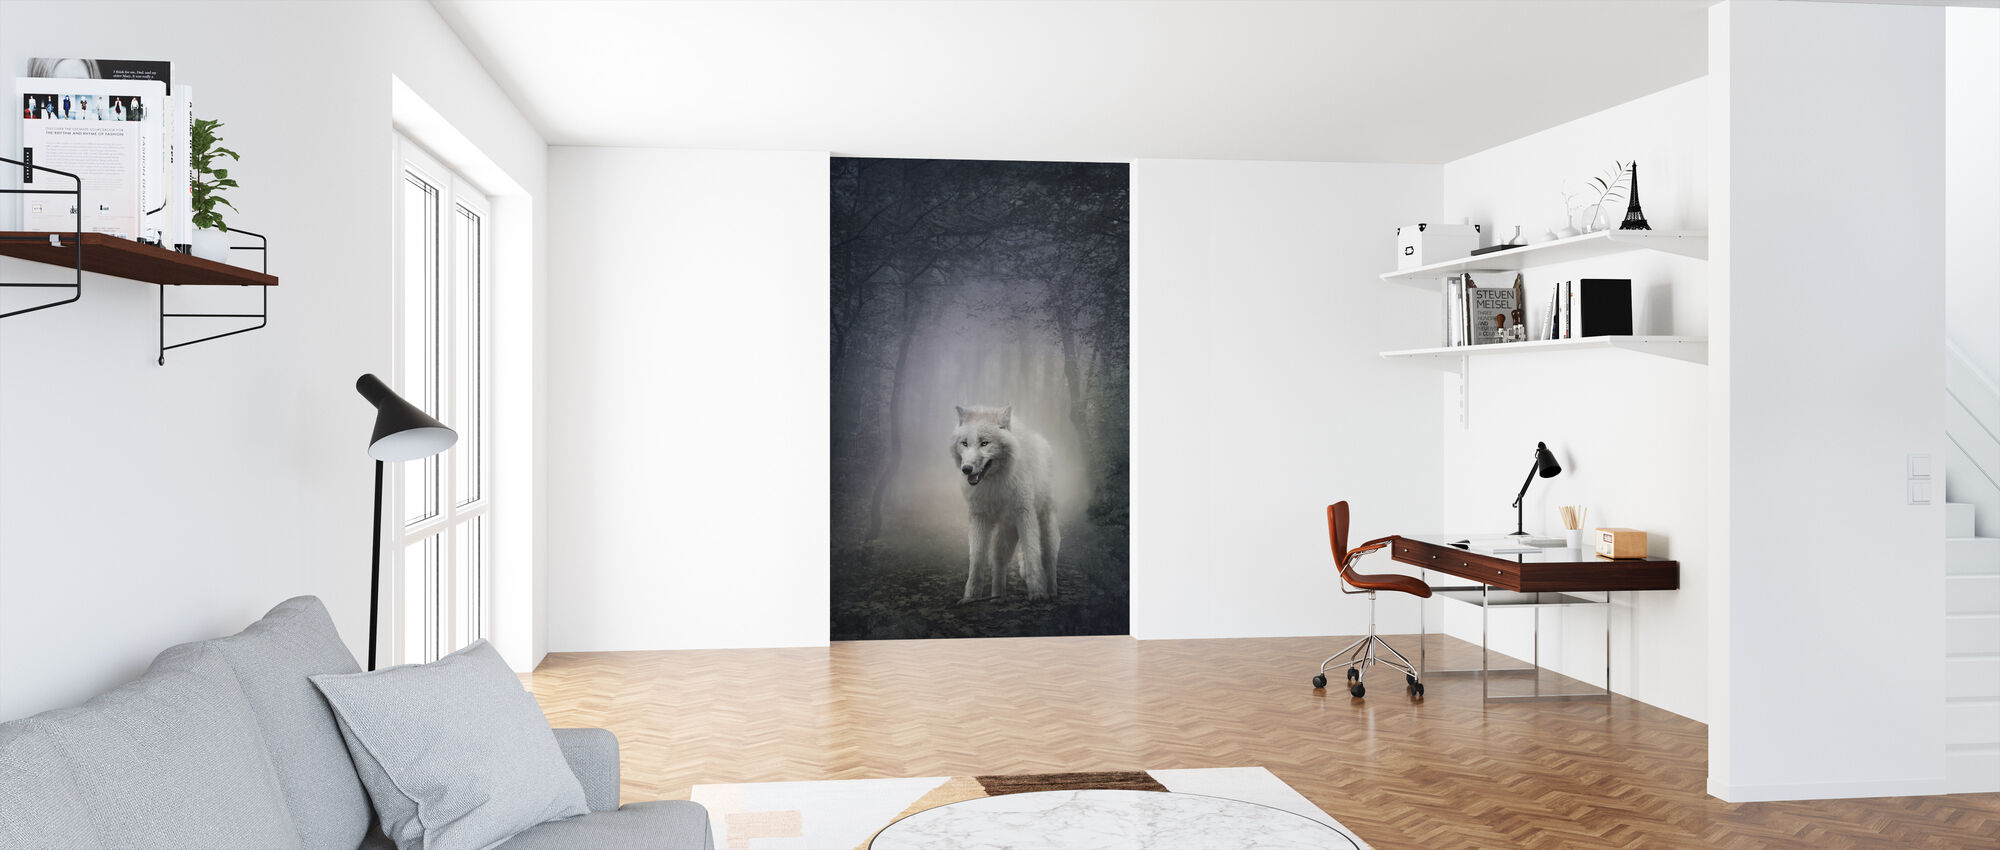 White Wolf in the Night Forest - Wallpaper - Office